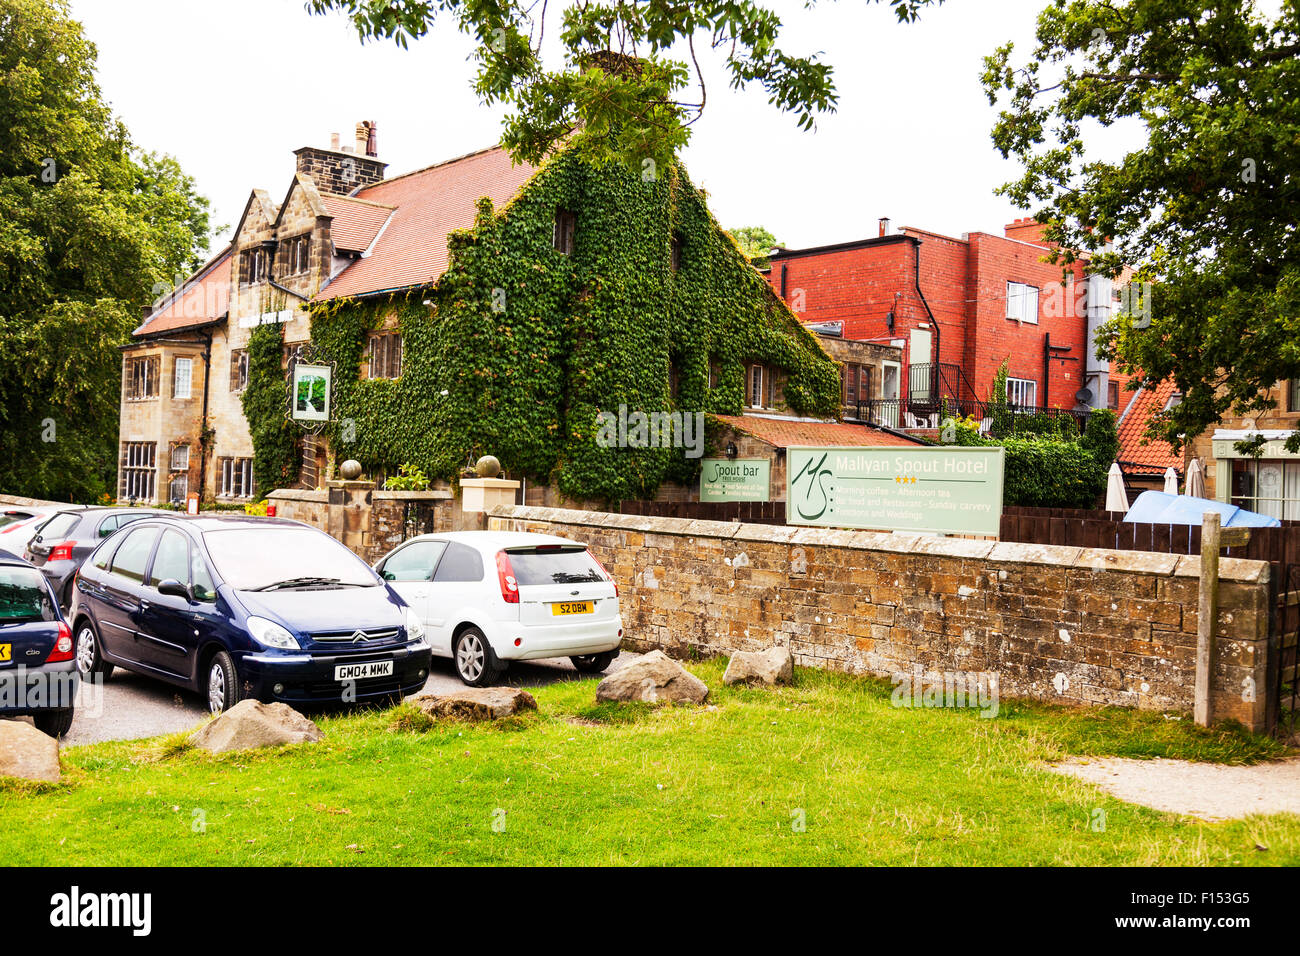 Mallyan Spout Hotel pub restaurant building Goathland North Yorkshire UK England exterior front sign - Stock Image